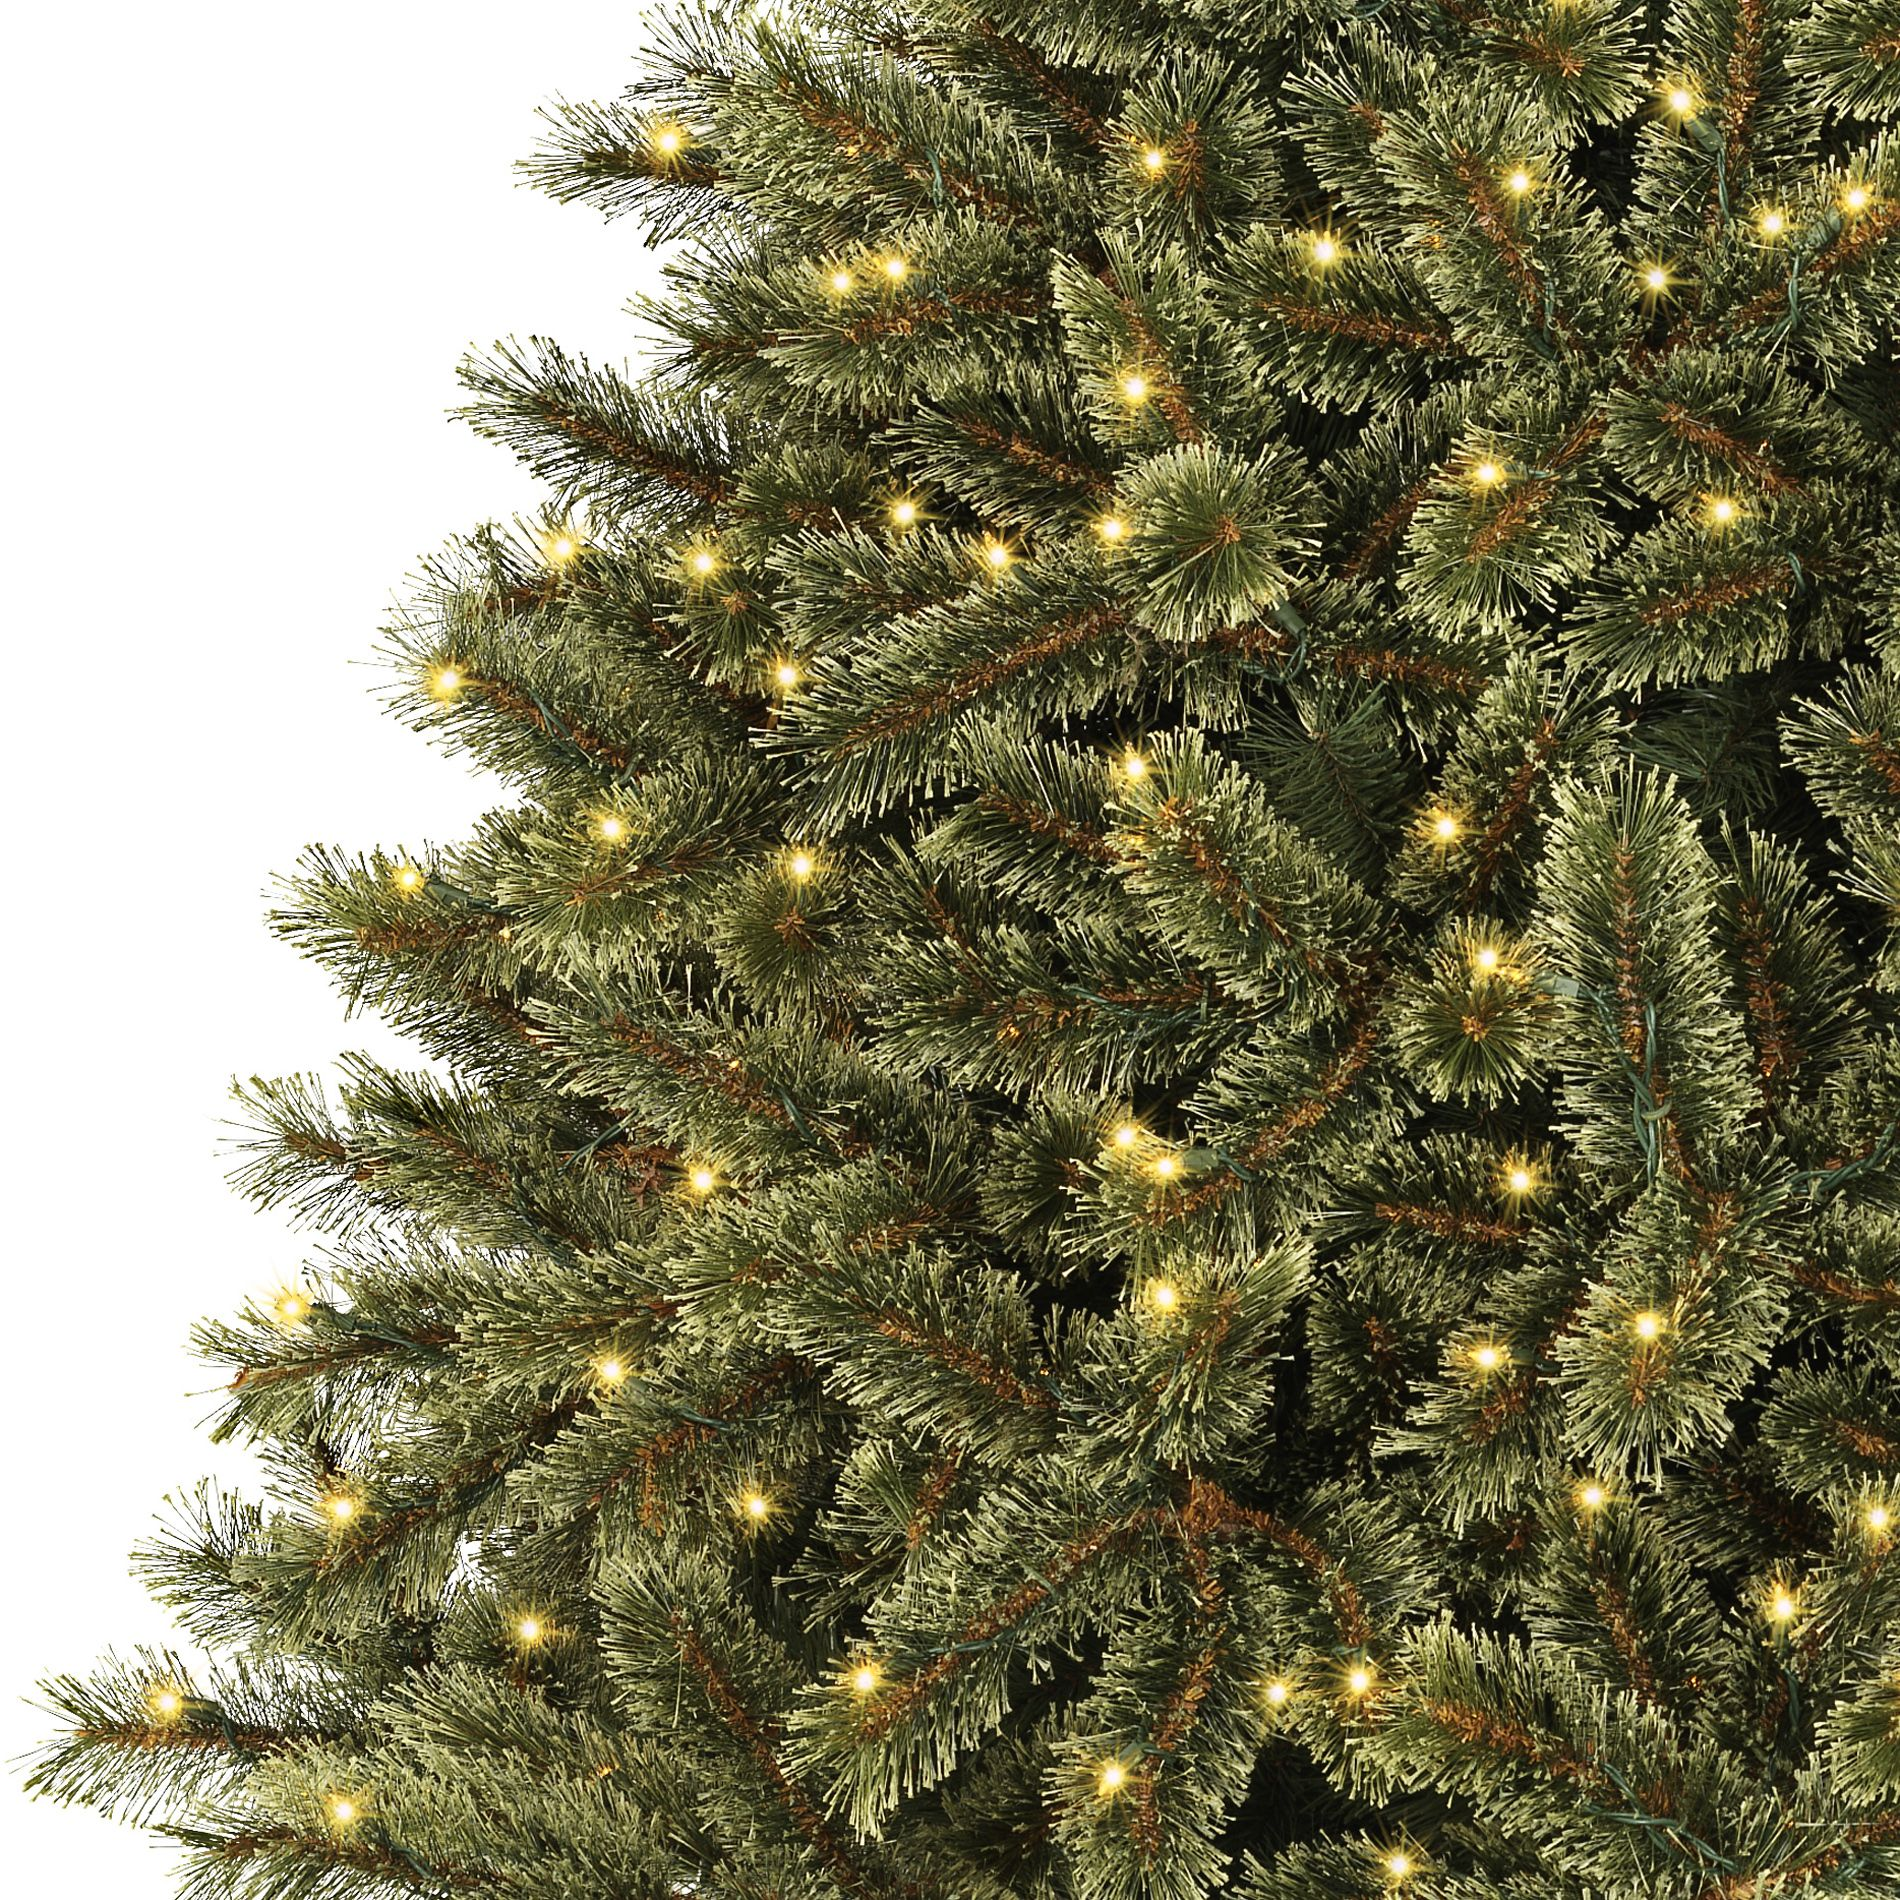 Ty Pennington Style 7.5ft Cashmere Mixed Pine Christmas Tree with 600 Clear Lights